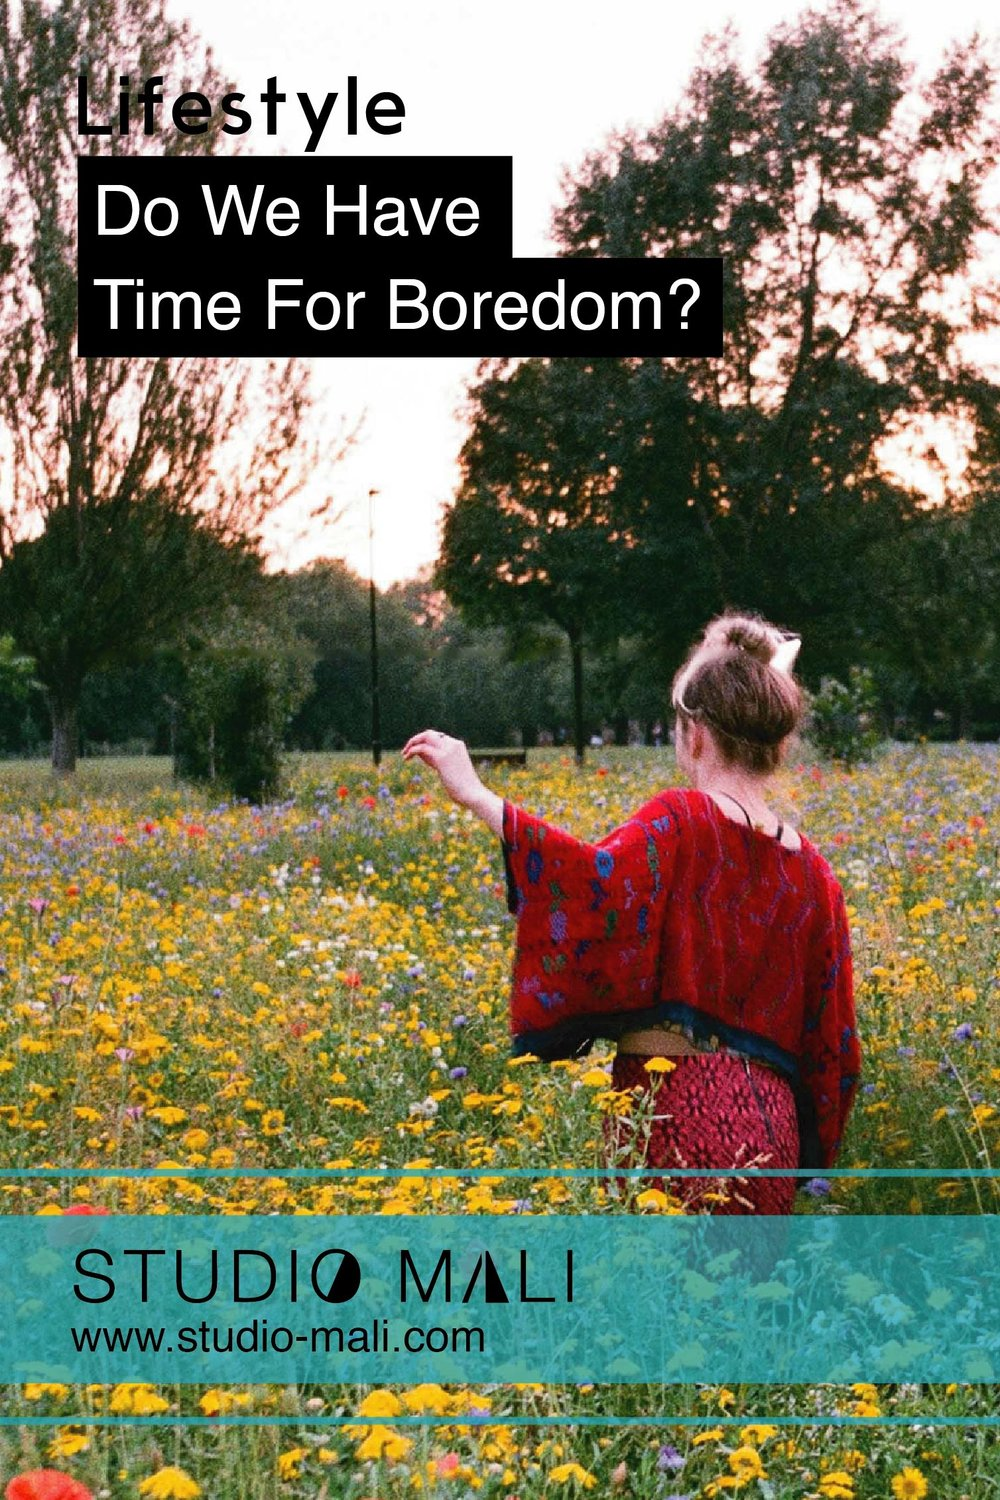 Lifestyle - Do We Have Time For Boredom? By Studio Mali.jpg